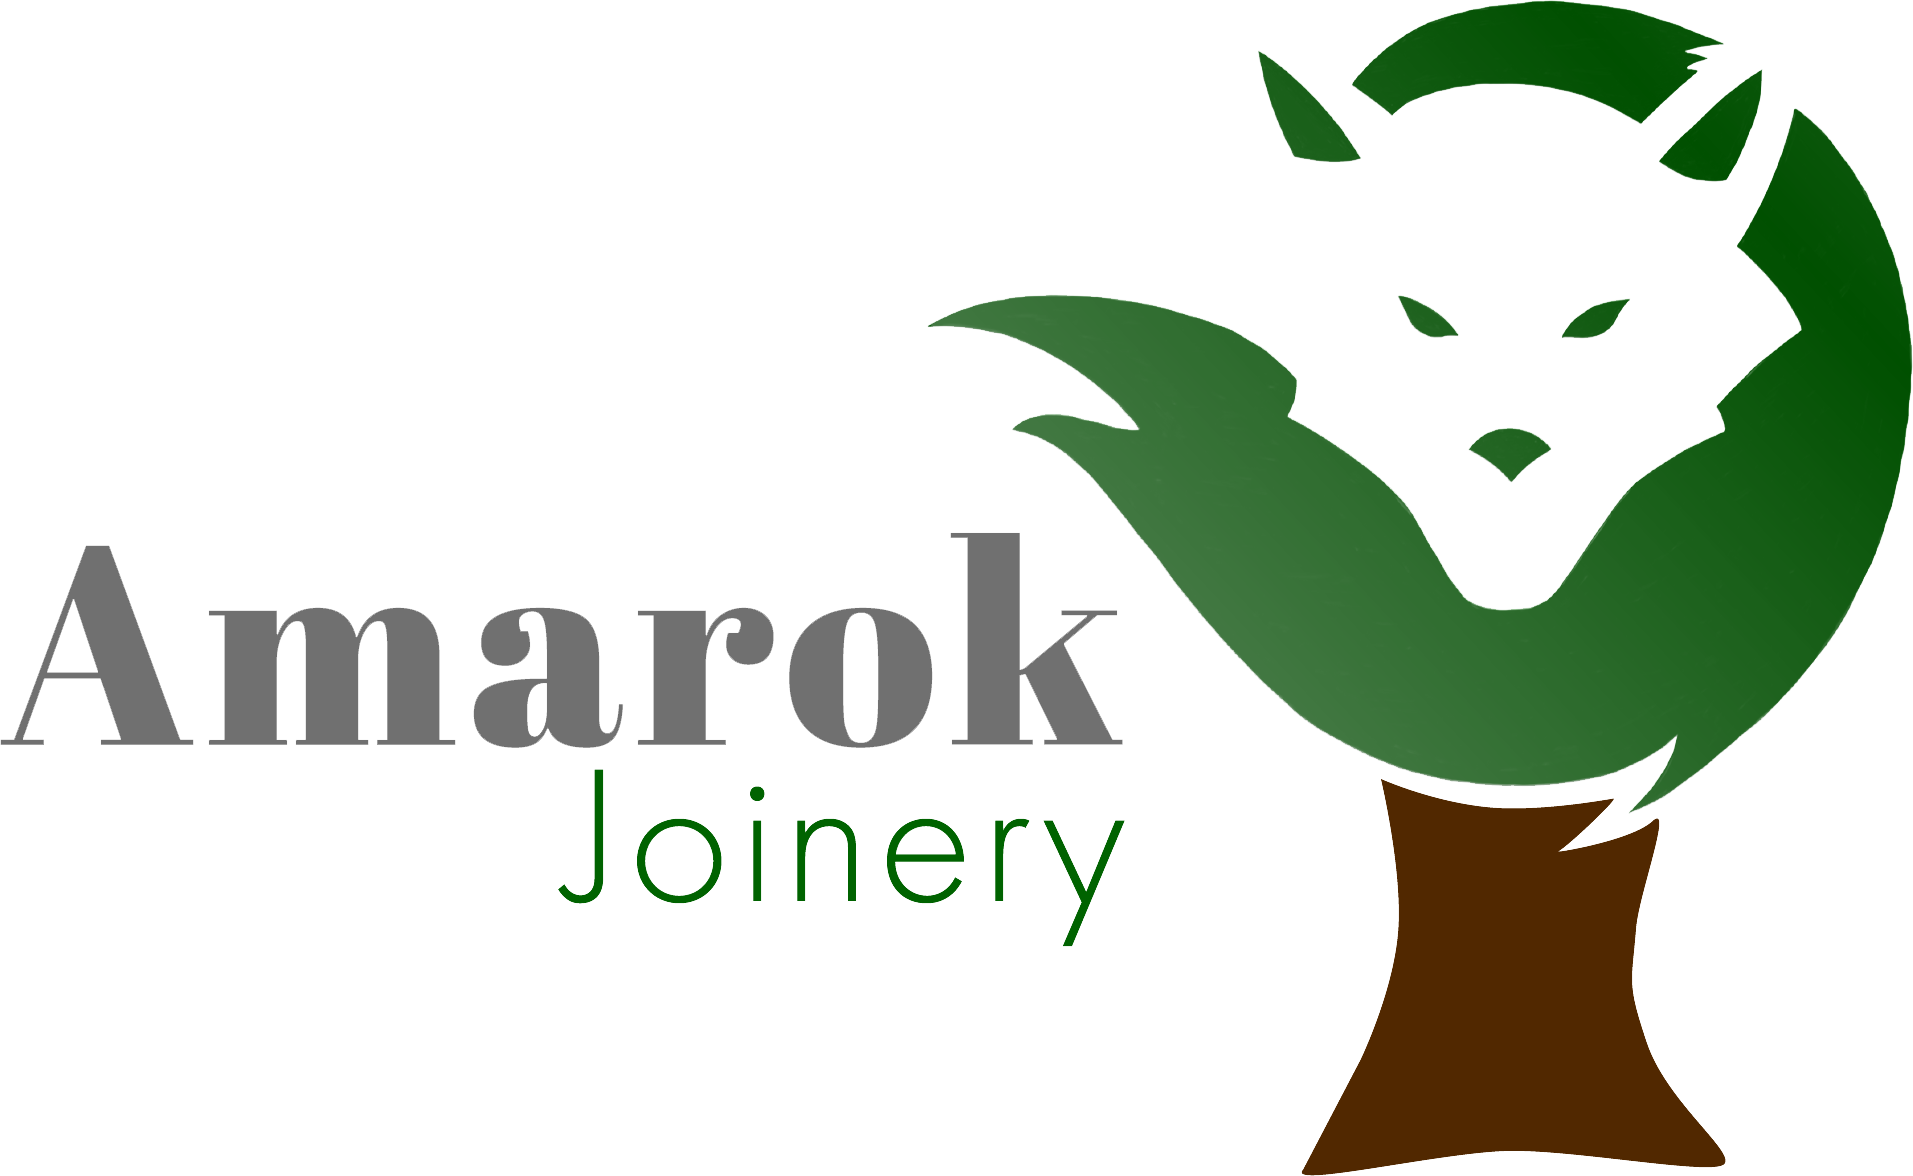 Amarok Joinery